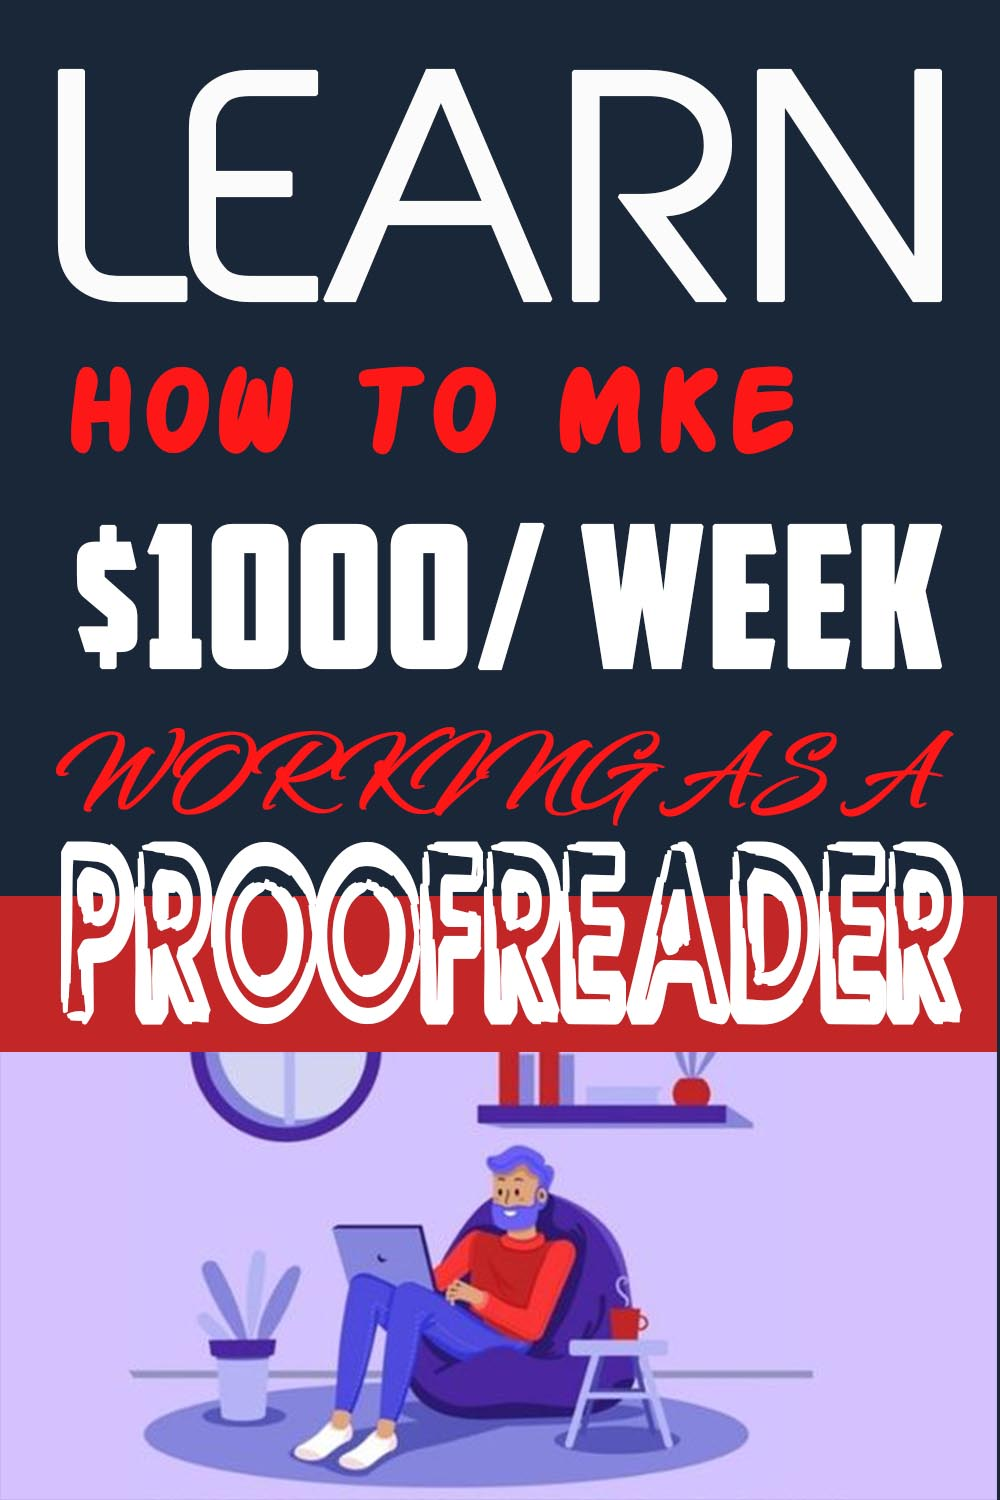 Learn How To Make $1000/Week Working As A Proofreader